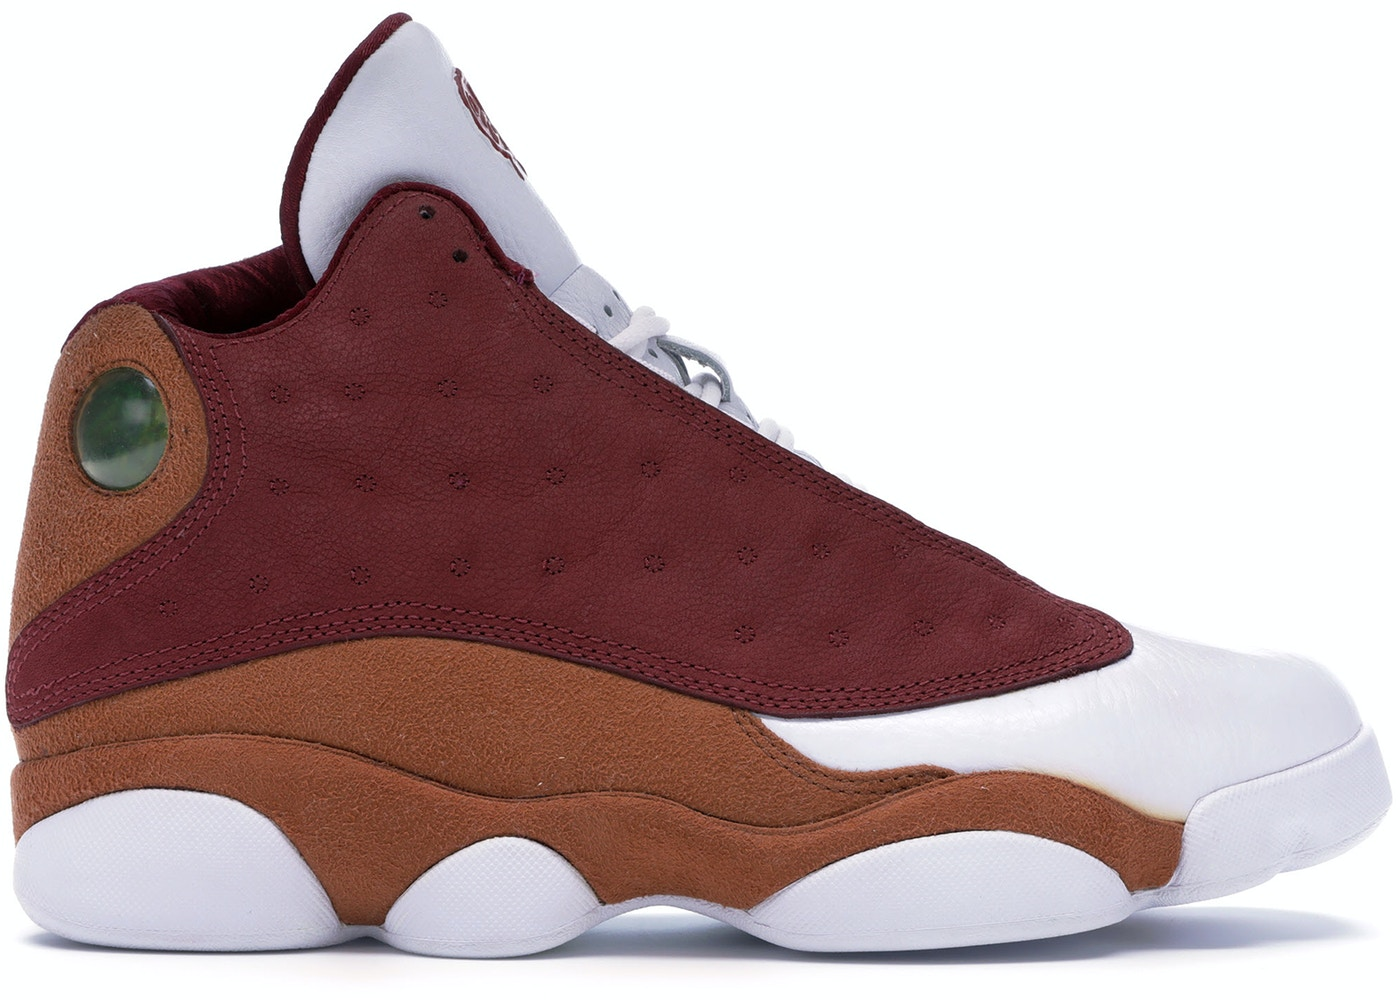 super popular 7f520 95774 Jordan 13 Retro Premio Bin 23 - 417212-601